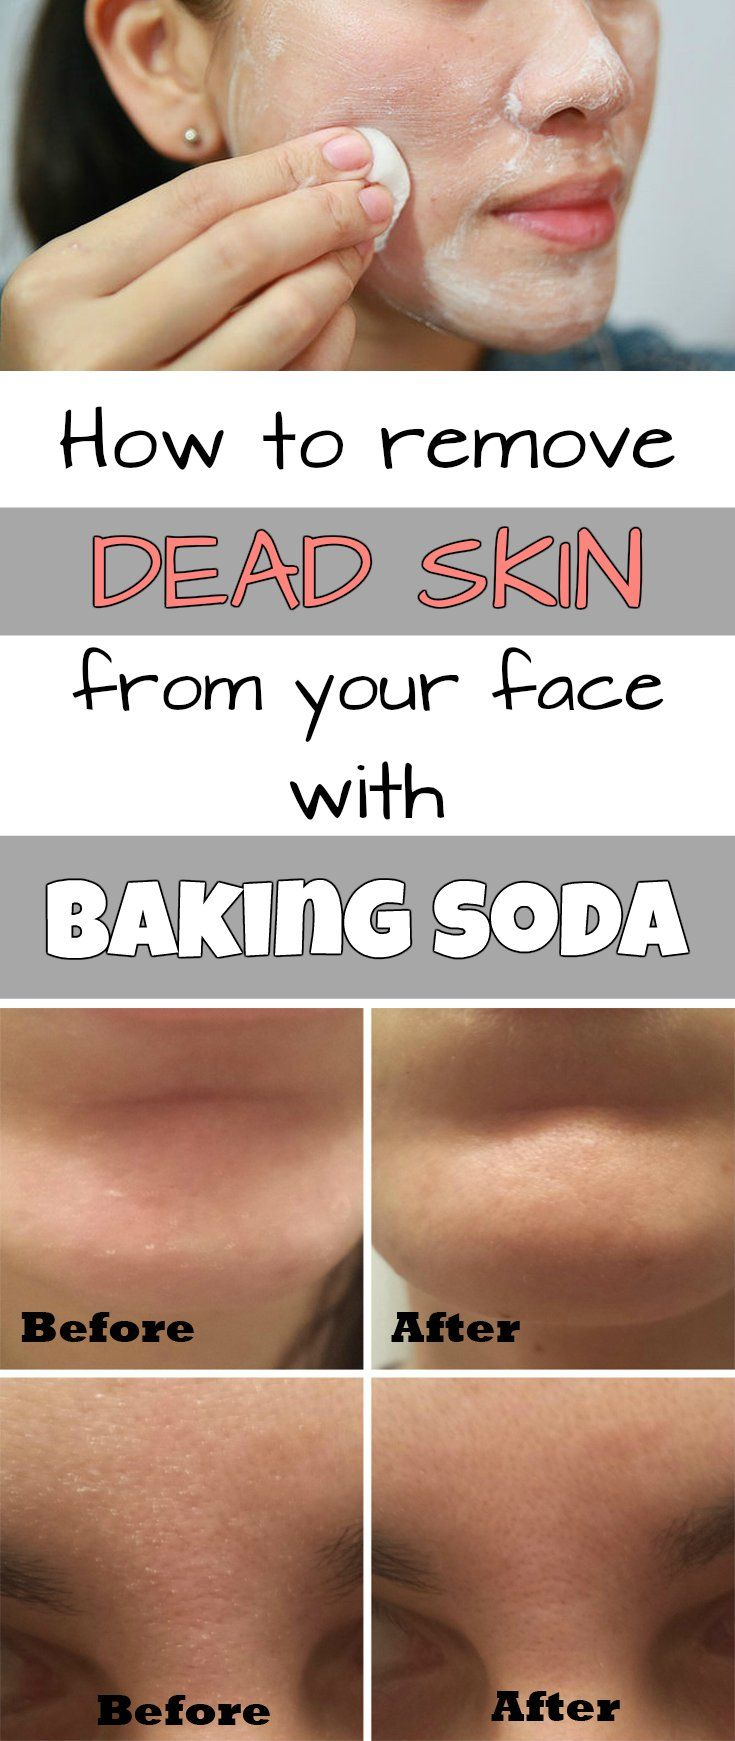 How to remove dead skin from your face with baking soda - RealBeautyTips.net